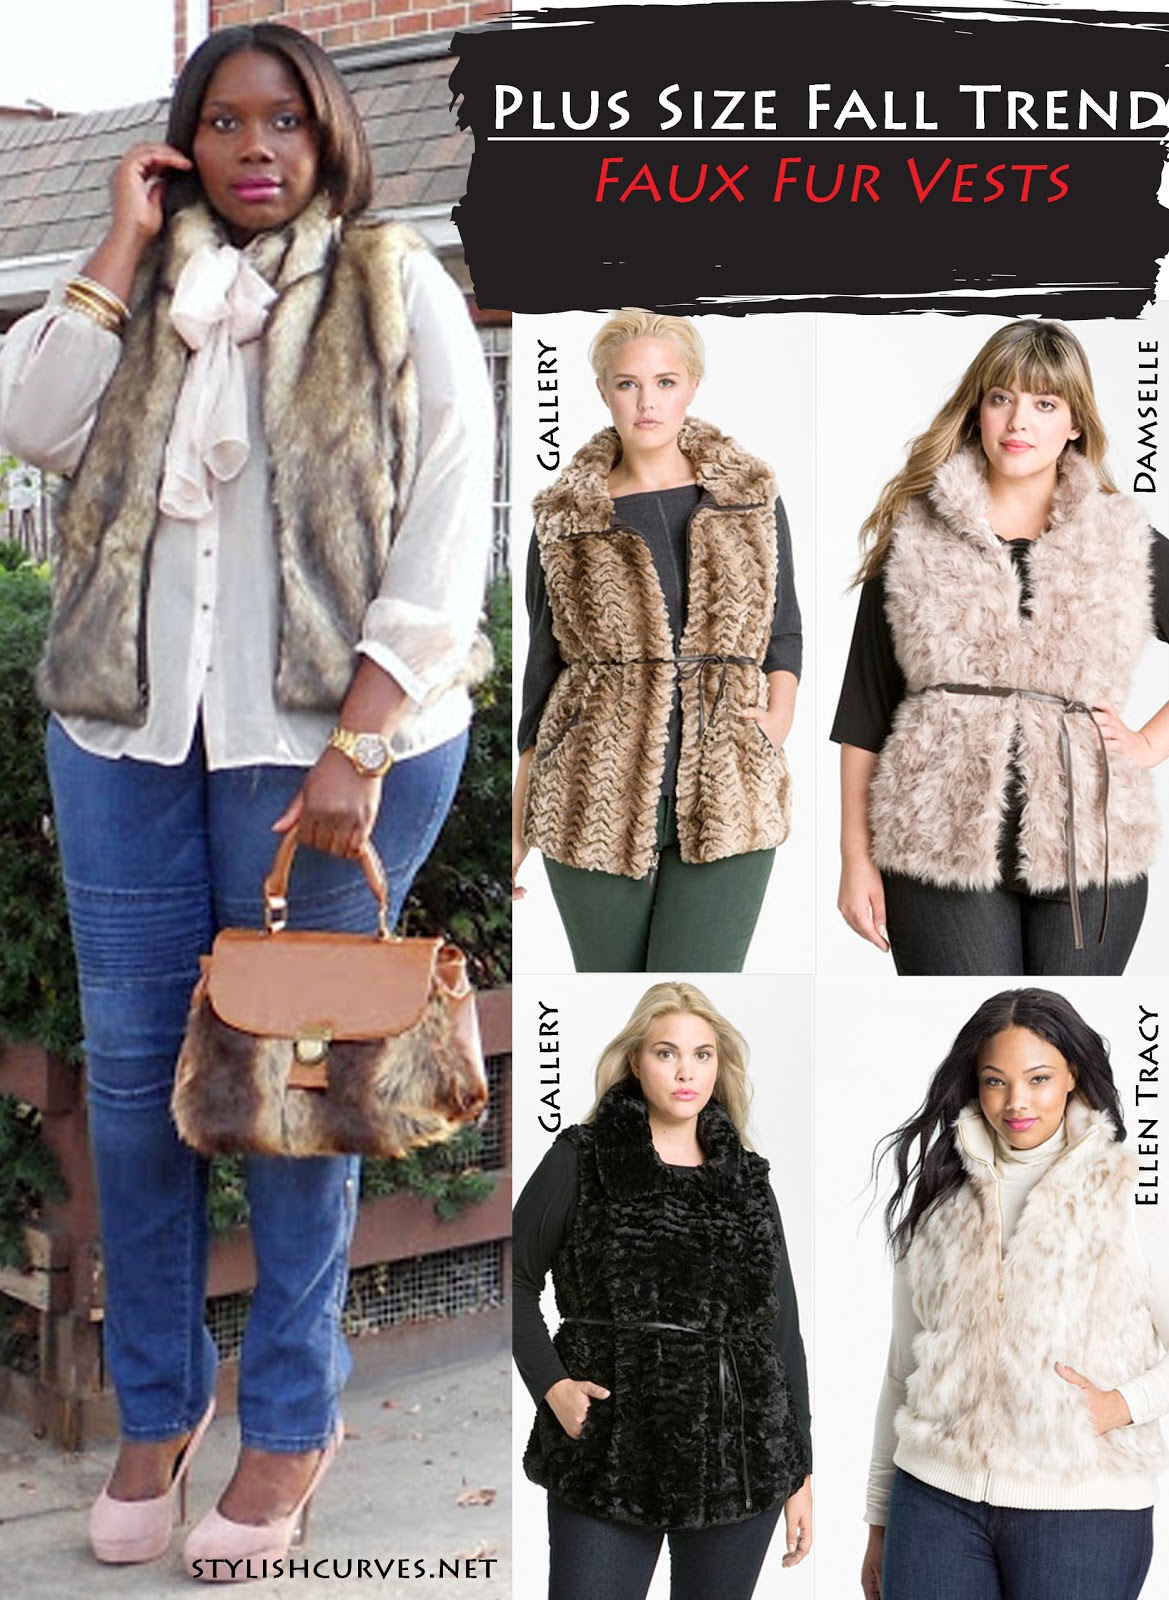 4e07e9dbb65 FALL TREND  PLUS SIZE FAUX FUR VESTS